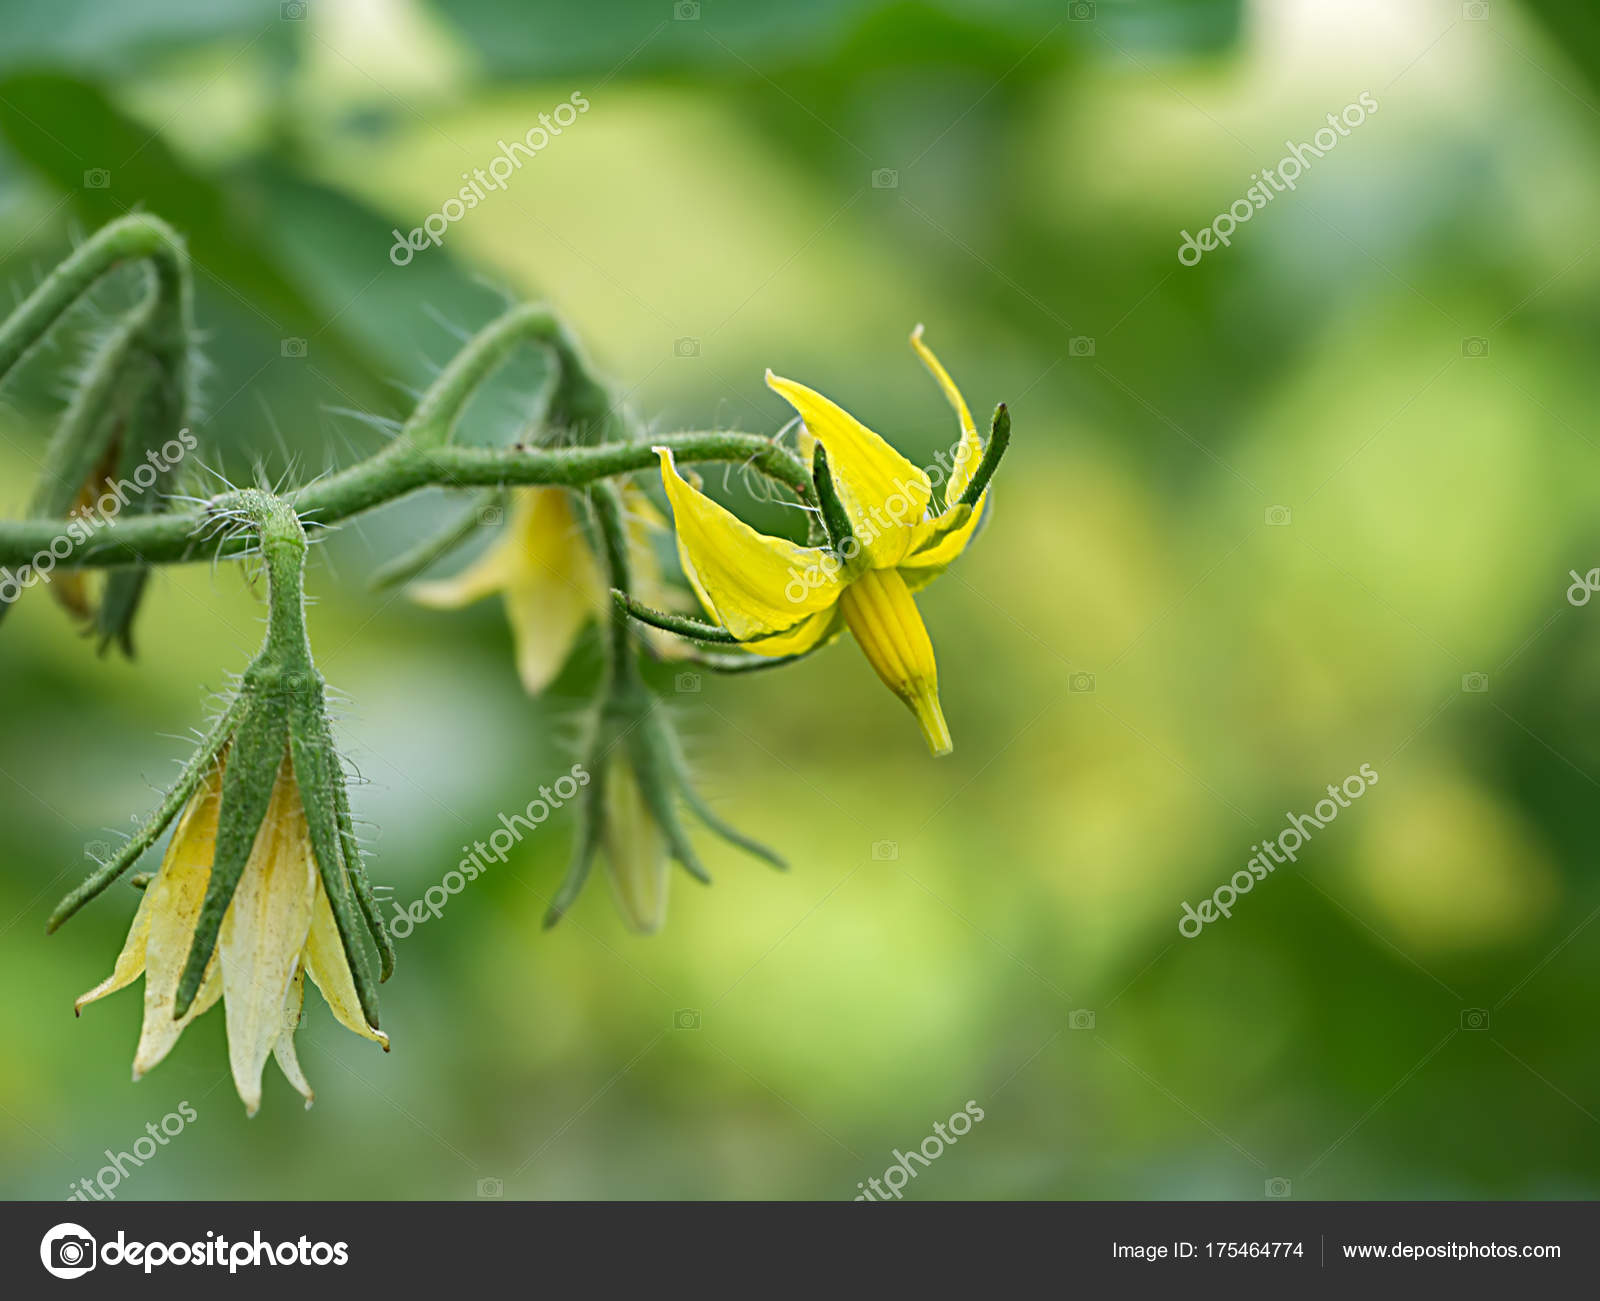 The flower of tomato plant stock photo noppharatth 175464774 the flower of tomato plant stock photo mightylinksfo